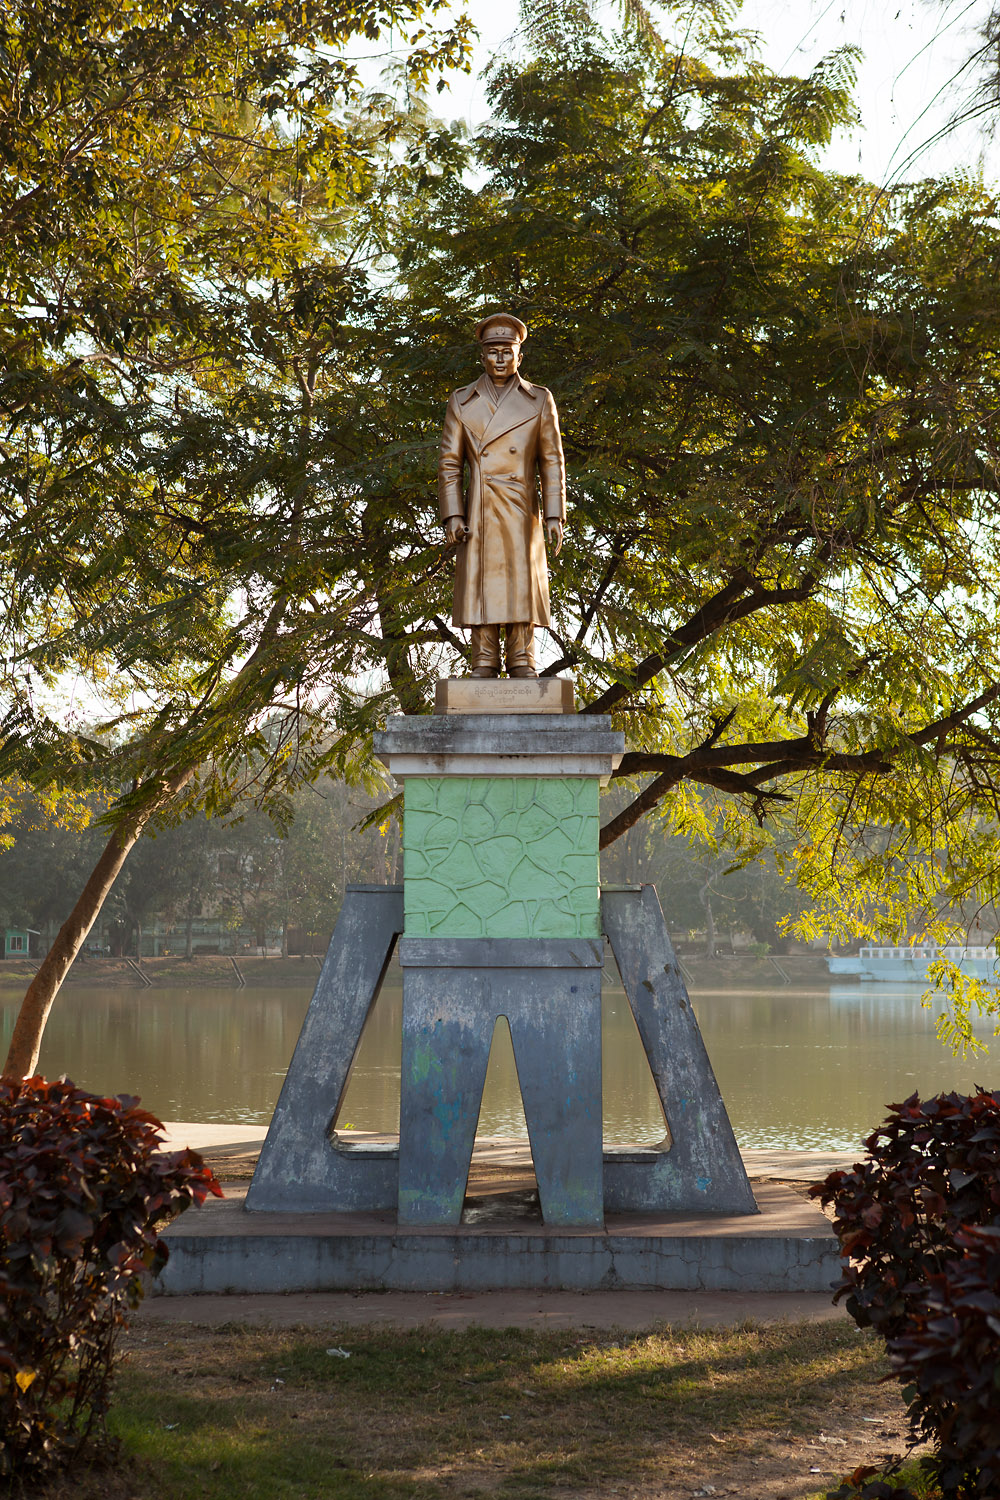 A statue of Aung San, who is considered the 'Father of the Nation' for his role in bringing about Burma's independence from British rule.  He is also the father of democratic opposition leader, Aung San Suu Kyi.